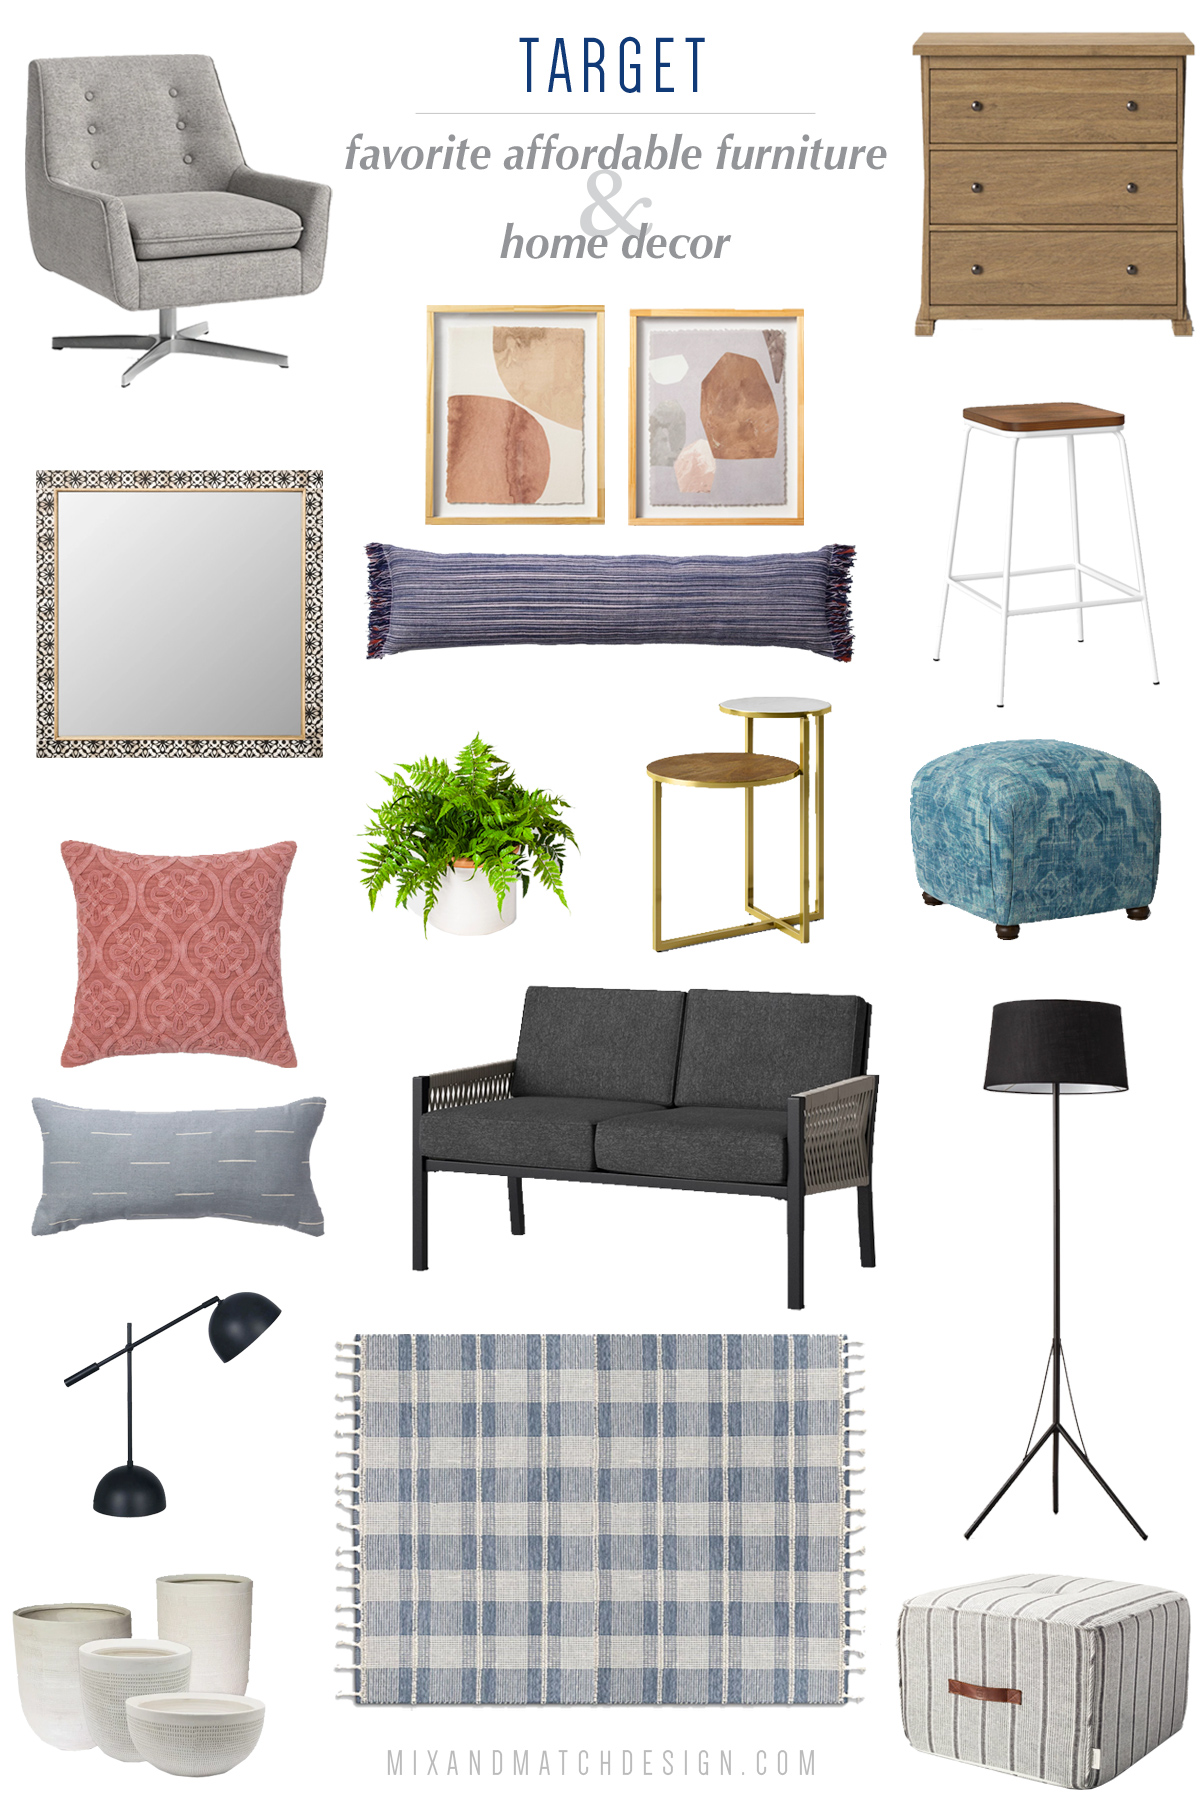 "Looking for affordable furniture and home decor? Target is a great place to shop! Their ""house brands"" like Project 62, Threshold, Opalhouse, and Hearth & Hand are fabulous resources for modern, farmhouse, and boho decorating styles. Click the image to take a look and get all the sources!"